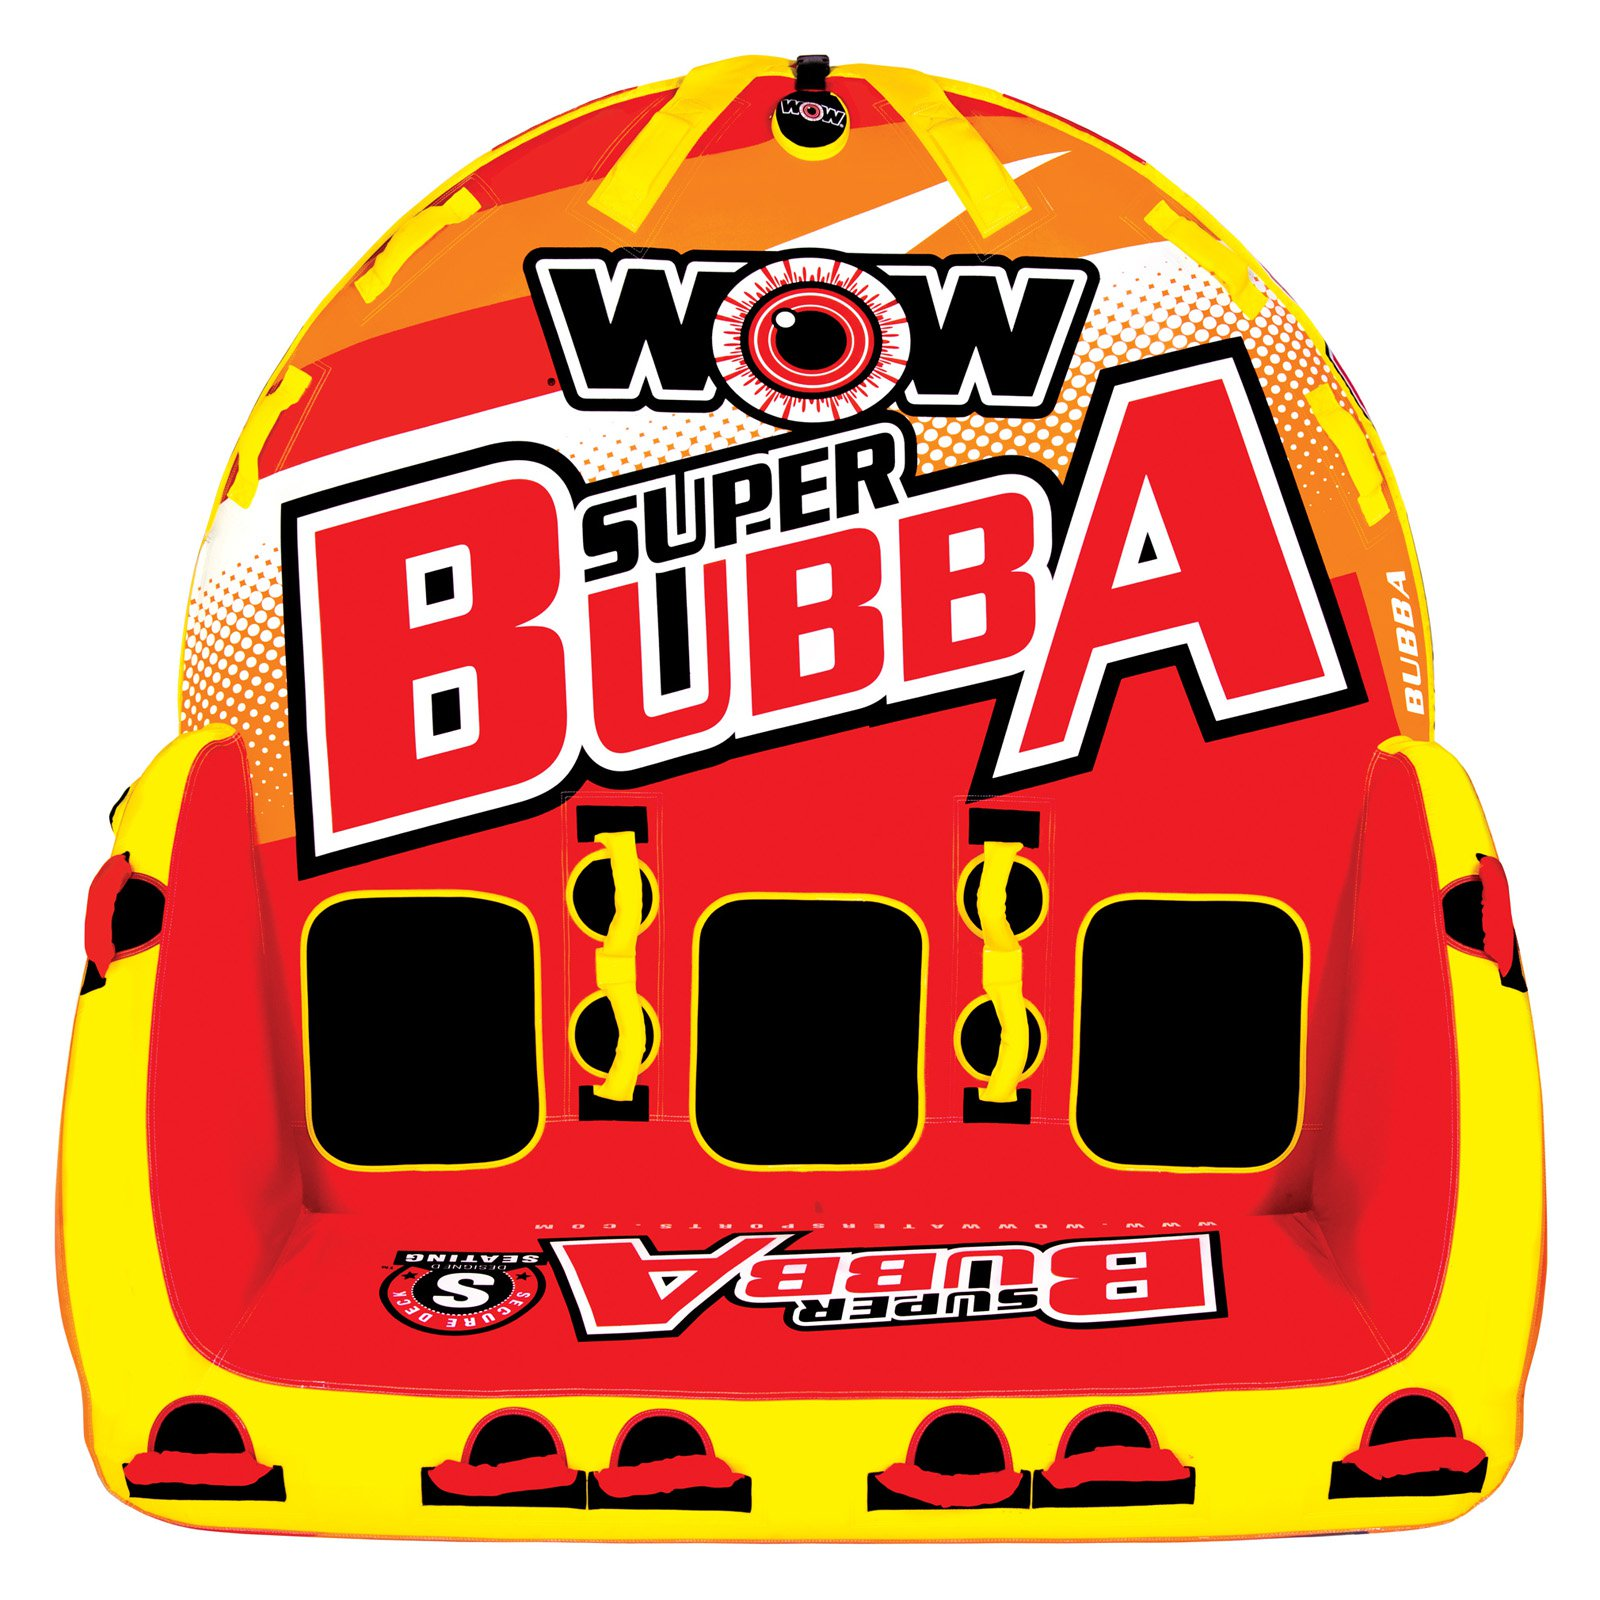 WOW 171060 Super Bubba Hi-Vis Inflatable Towable for 1-3 Riders by WOW Watersports USA